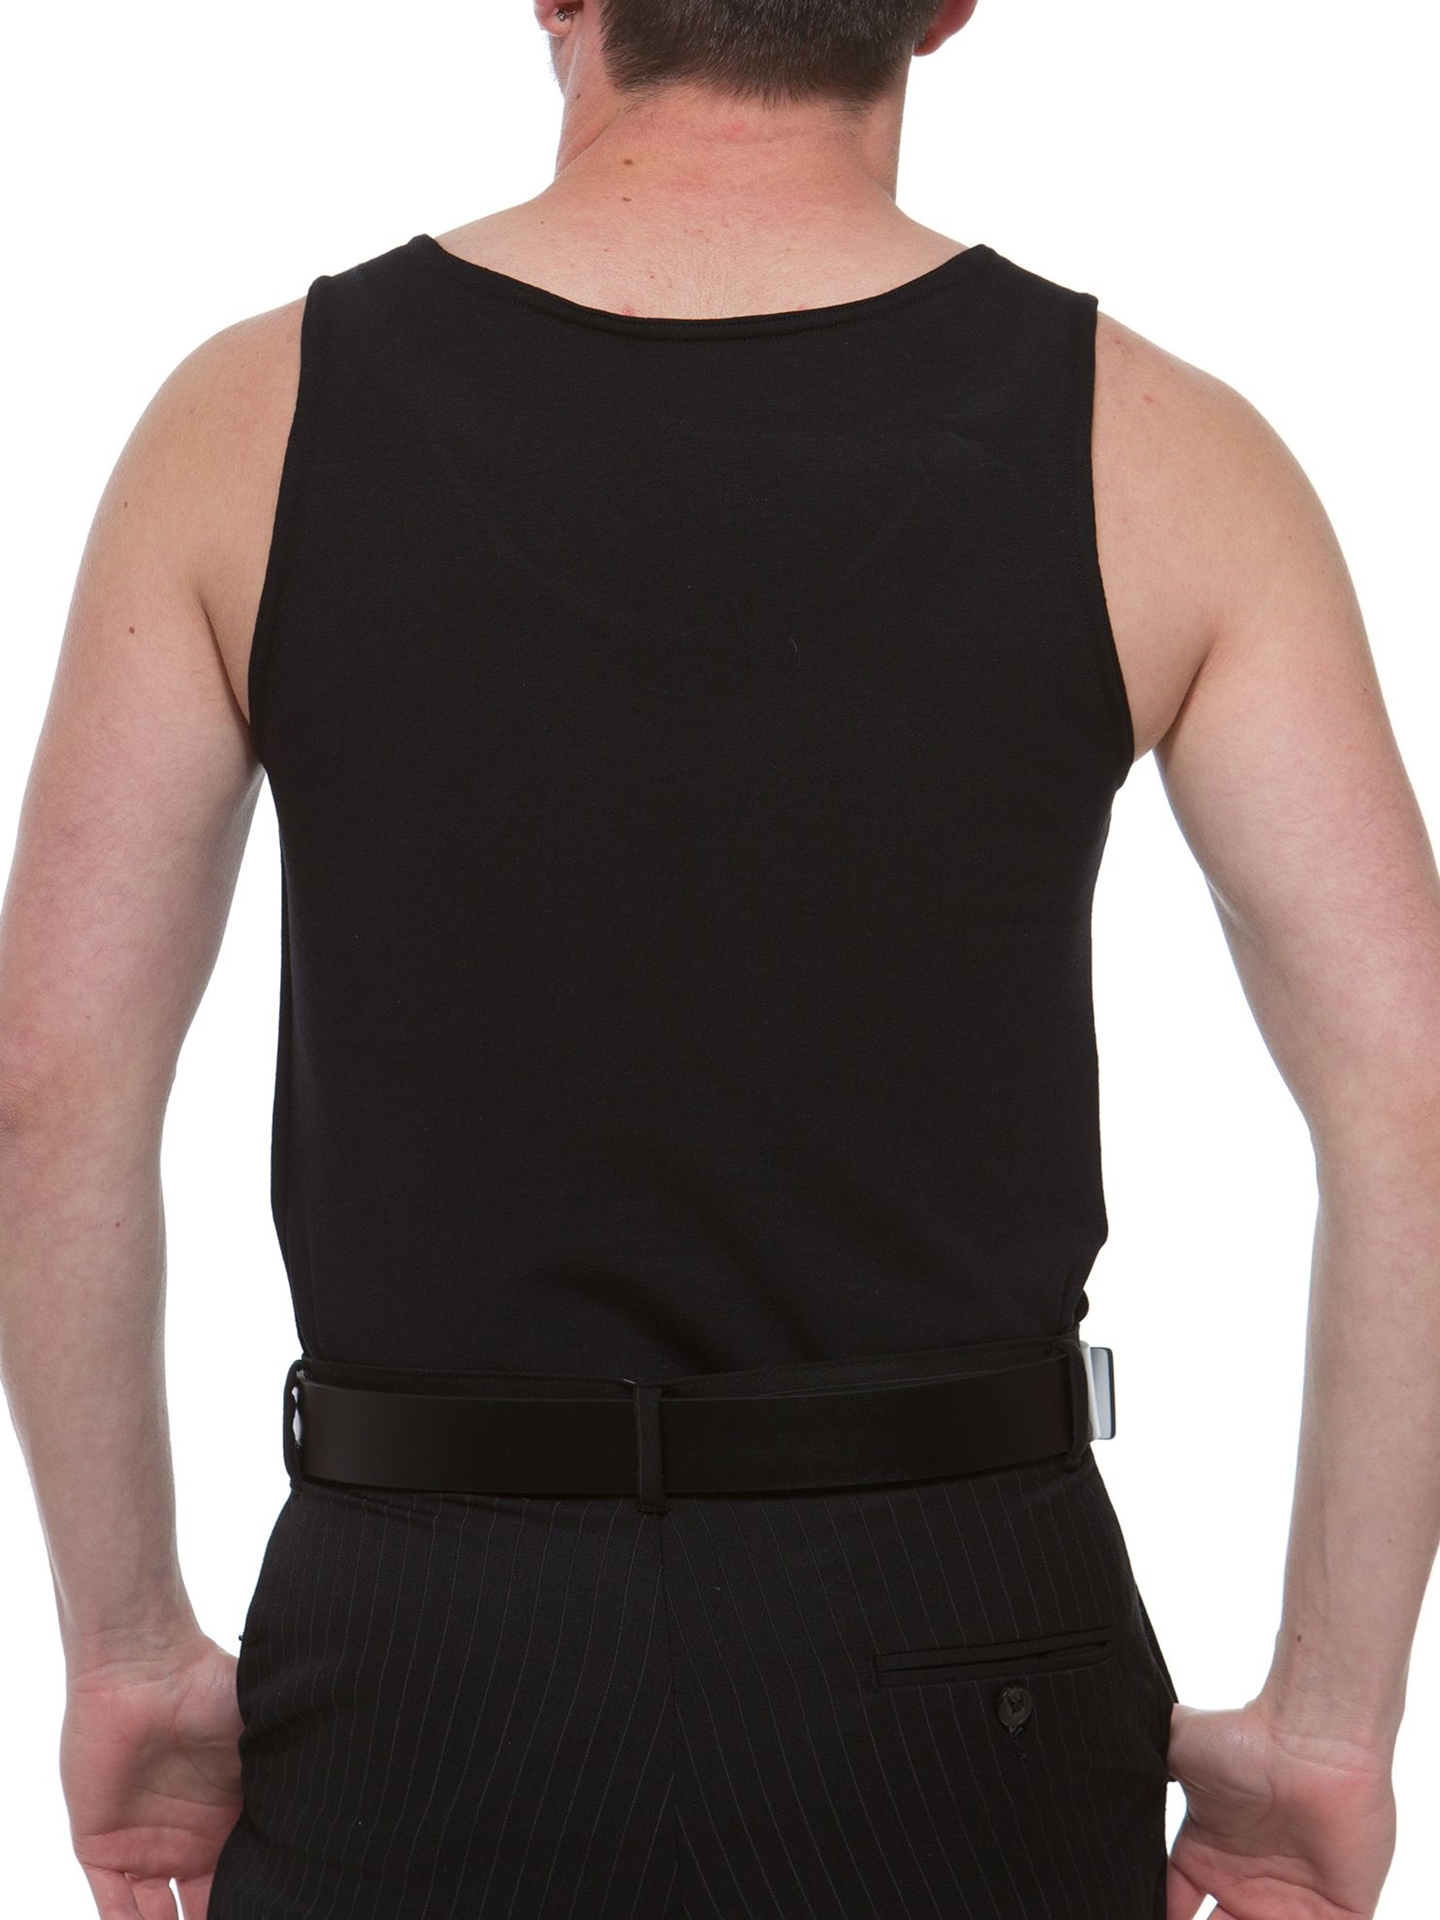 Chest Binder Designed for Transgender